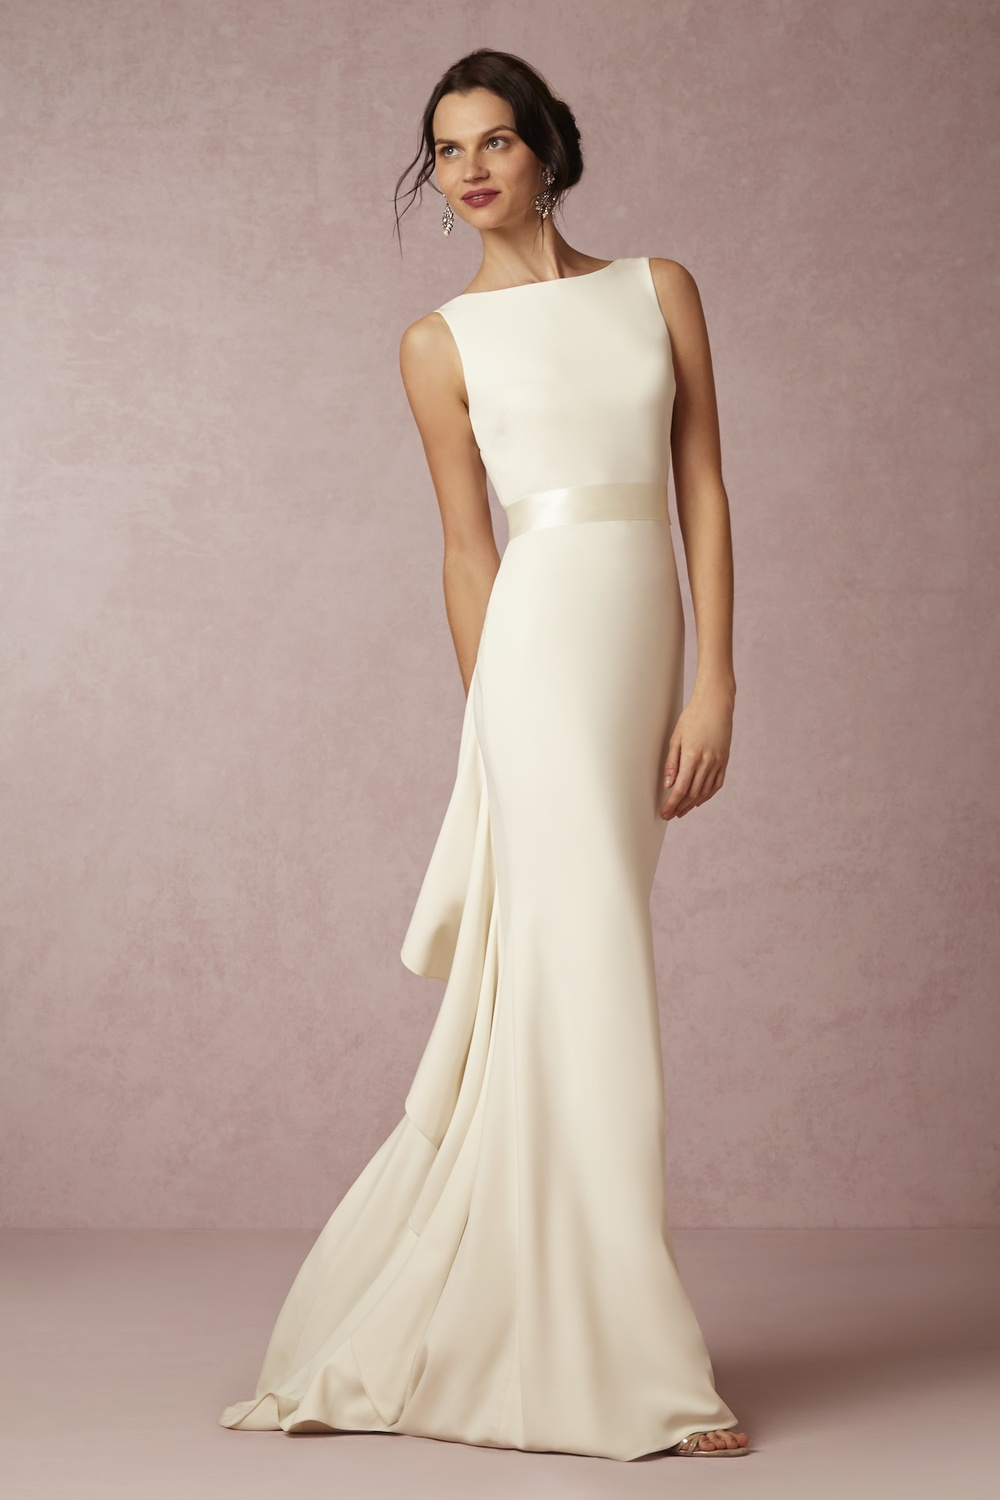 Elegant in its simplicity, this gown is as classy as it is timeless. Valentina Gown; $1,000